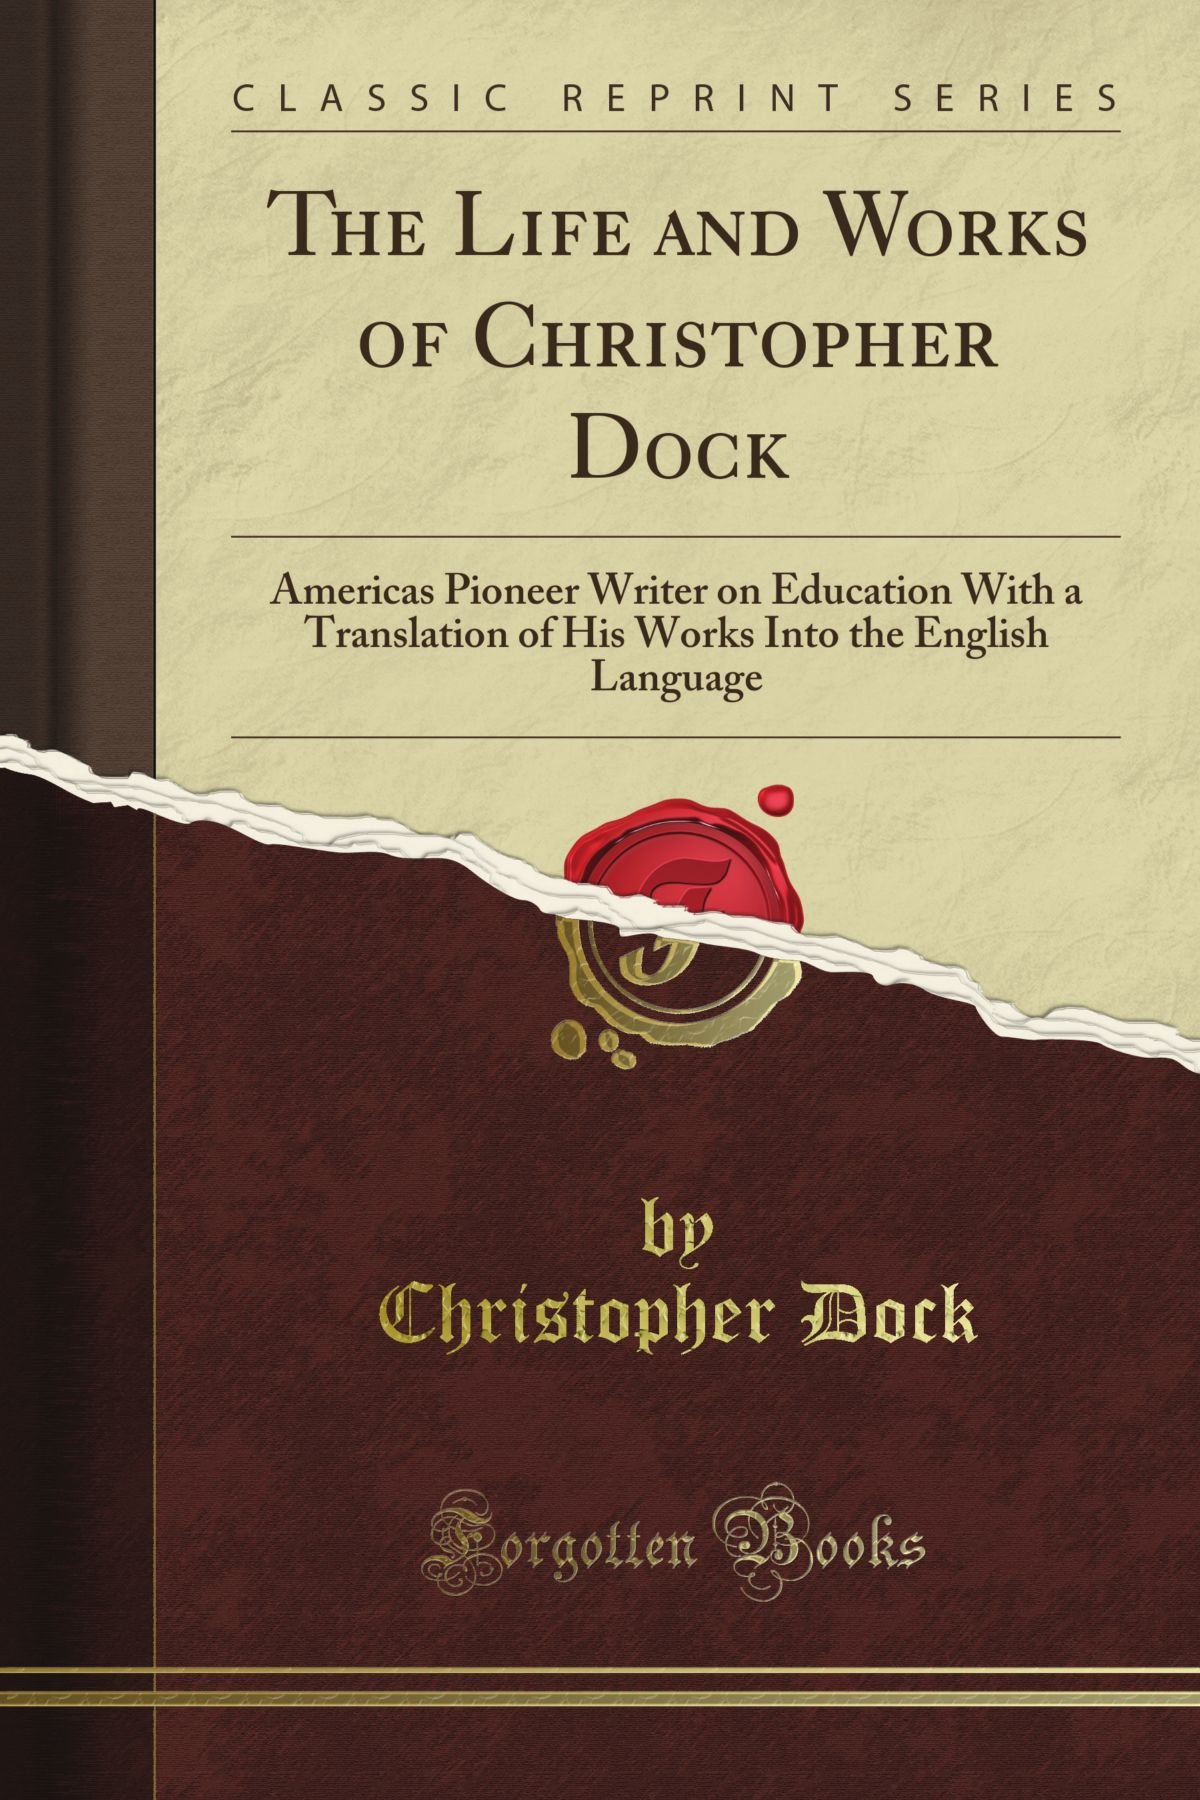 The Life and Works of Christopher Dock: America's Pioneer Writer on Education With a Translation of His Works Into the English Language (Classic Reprint) by Forgotten Books